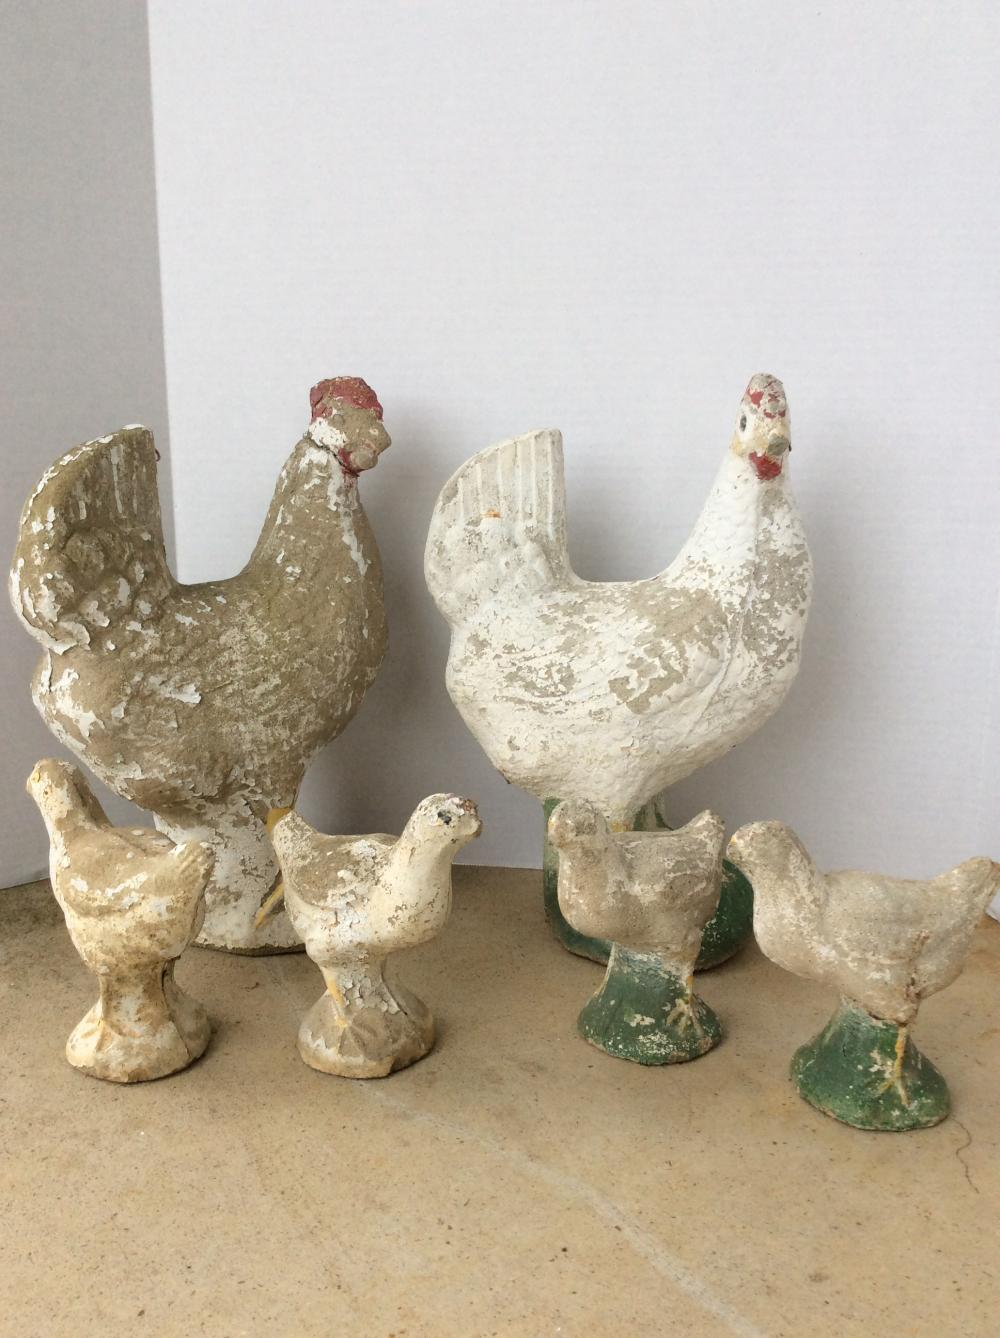 Concrete Yard Statues, Family of Chickens